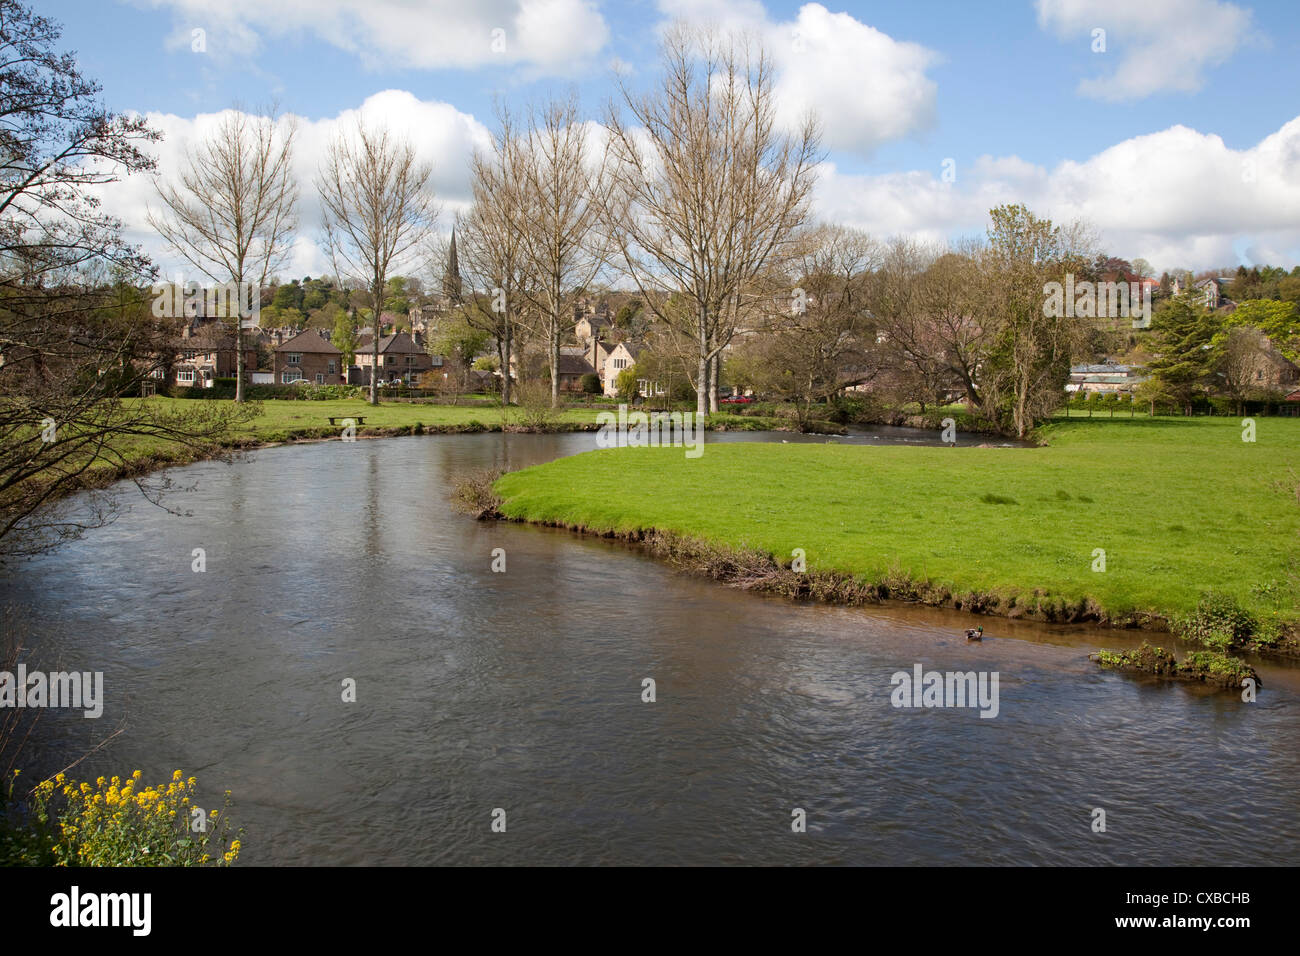 Wye River and town, Bakewell, Derbyshire, England, United Kingdom, Europe - Stock Image